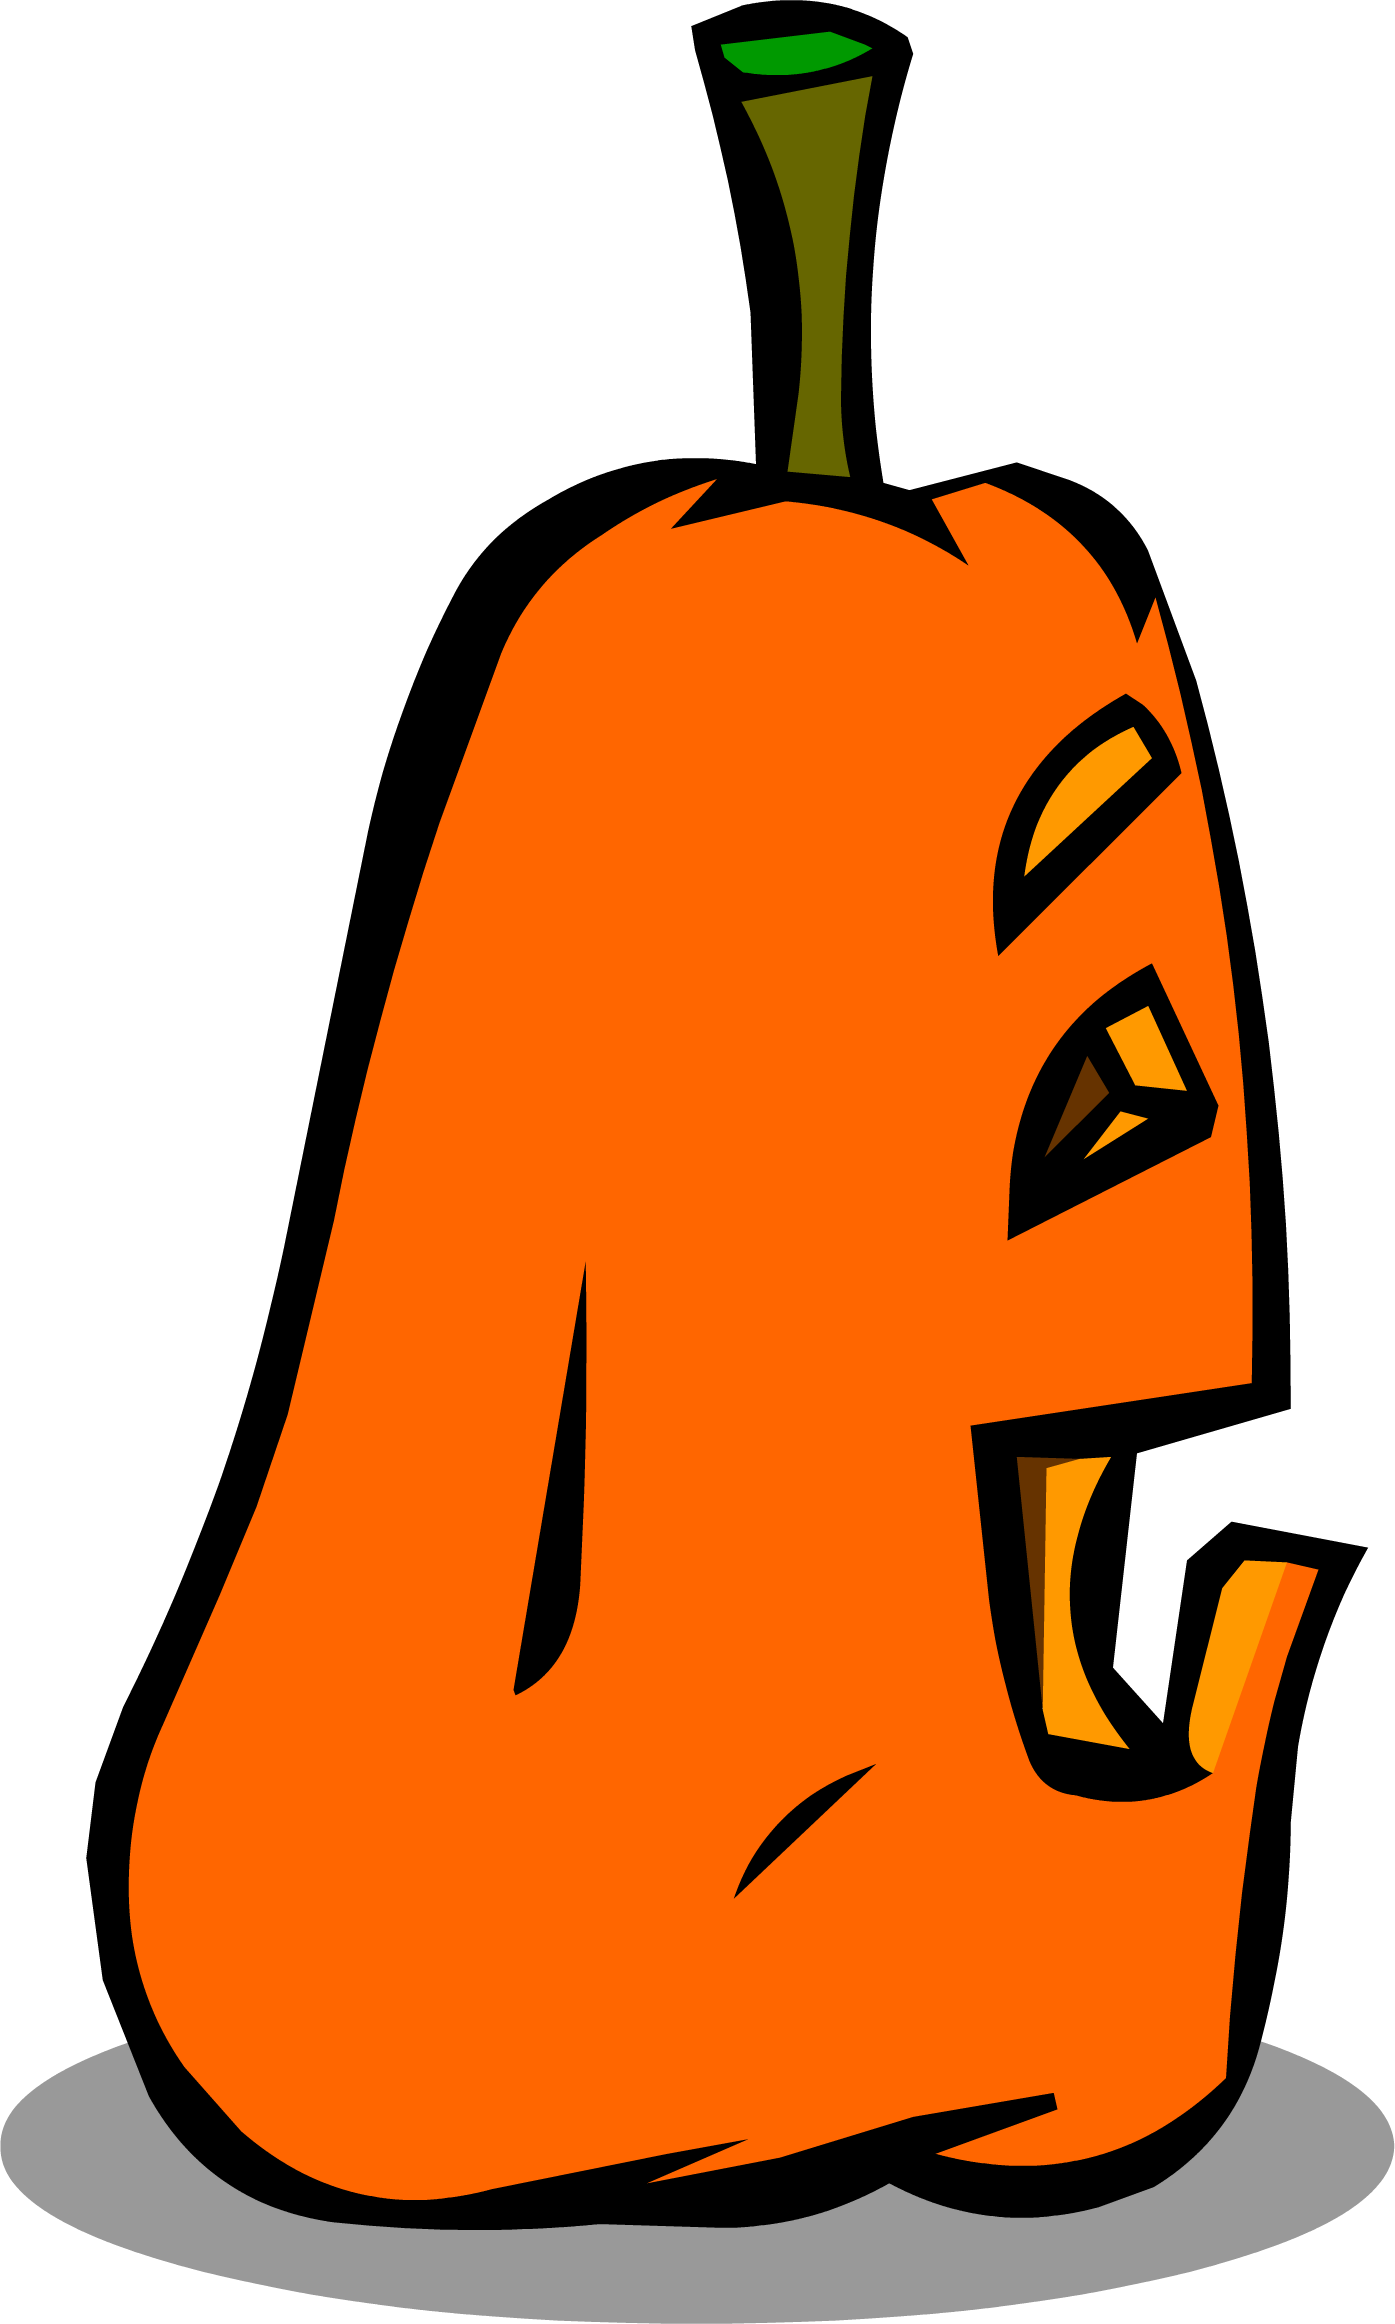 Pumpkin clipart jack o lantern sprite banner black and white library Image - Goofy Jack-O-Lantern sprite 007.png | Club Penguin Rewritten ... banner black and white library